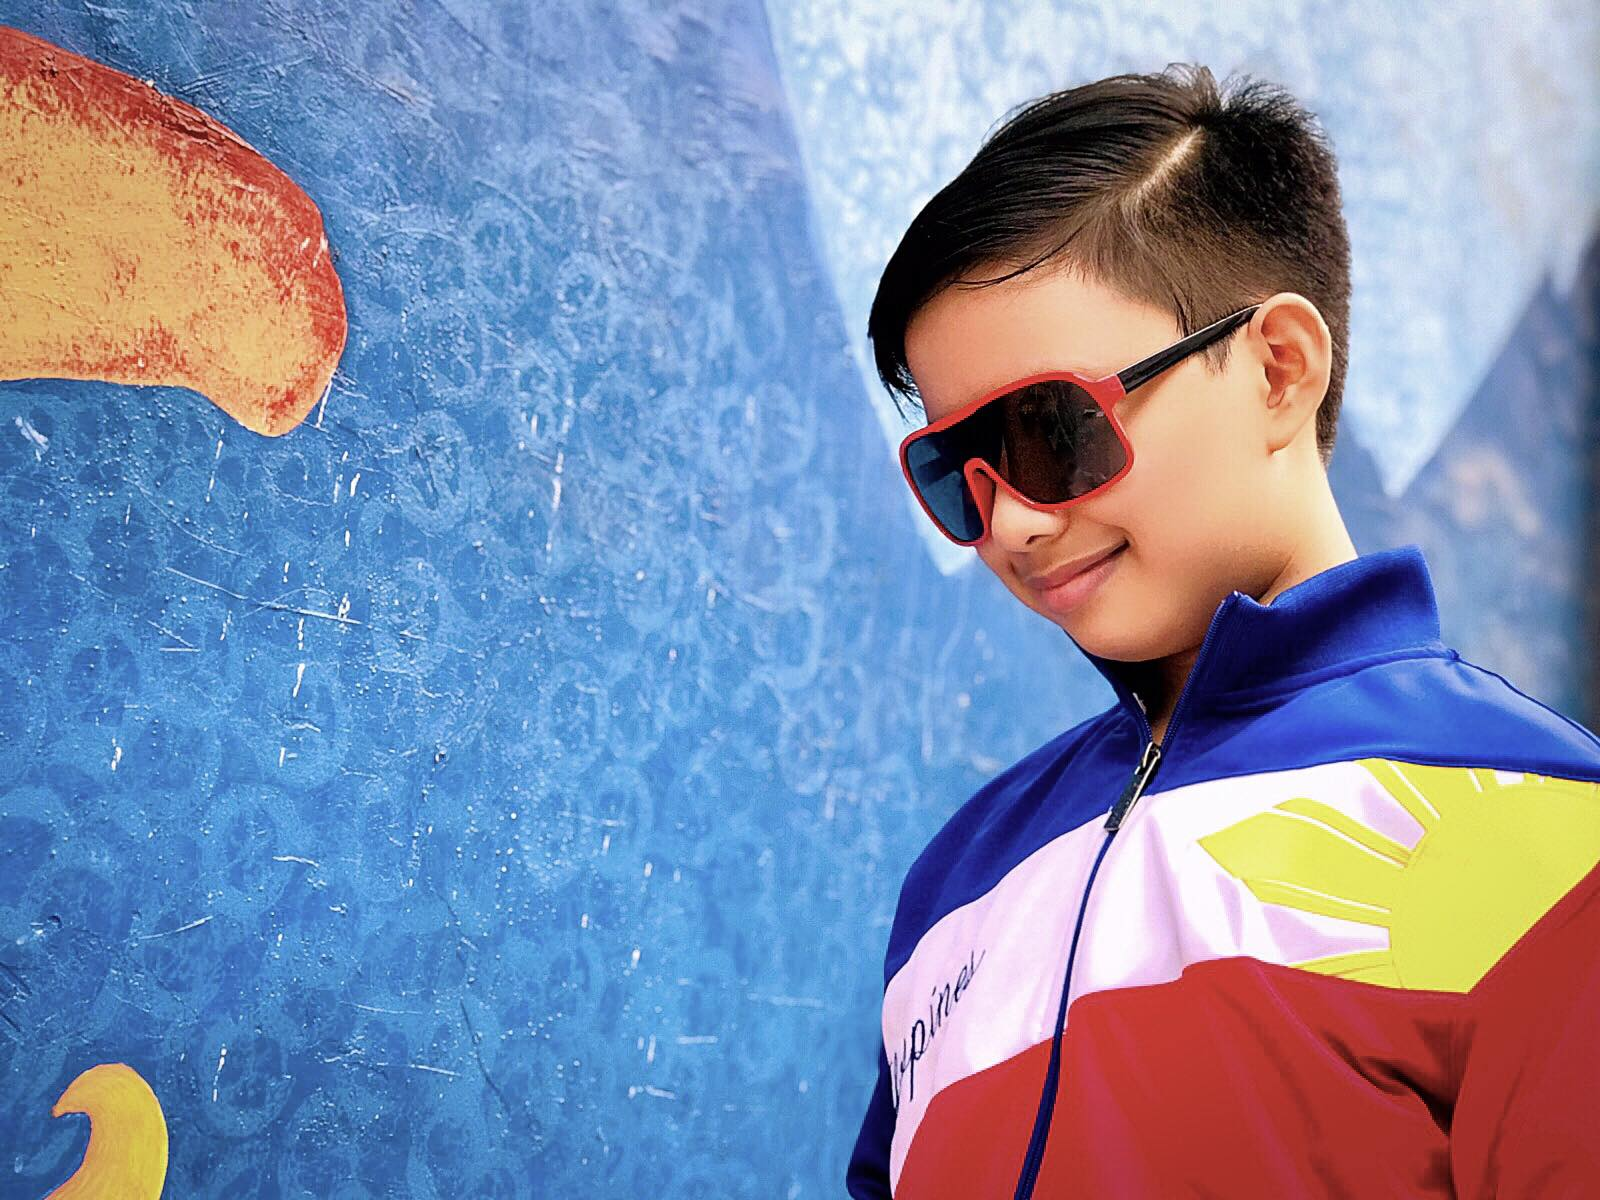 Little Picasso Philippines' 1st Child Youth Ambassador